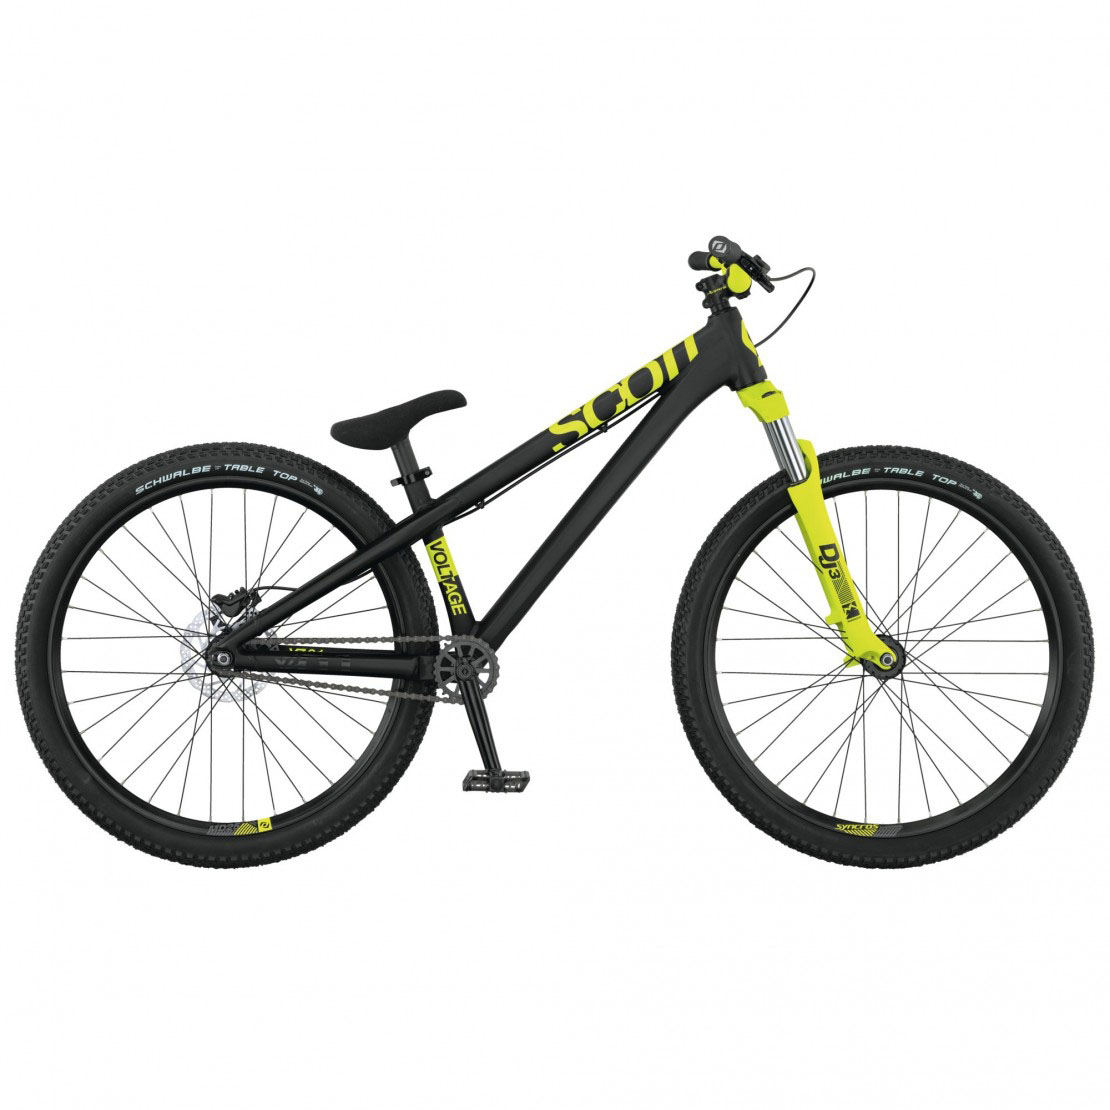 Voltage YZ 0.1 2015 - Dirt and Jump Bike